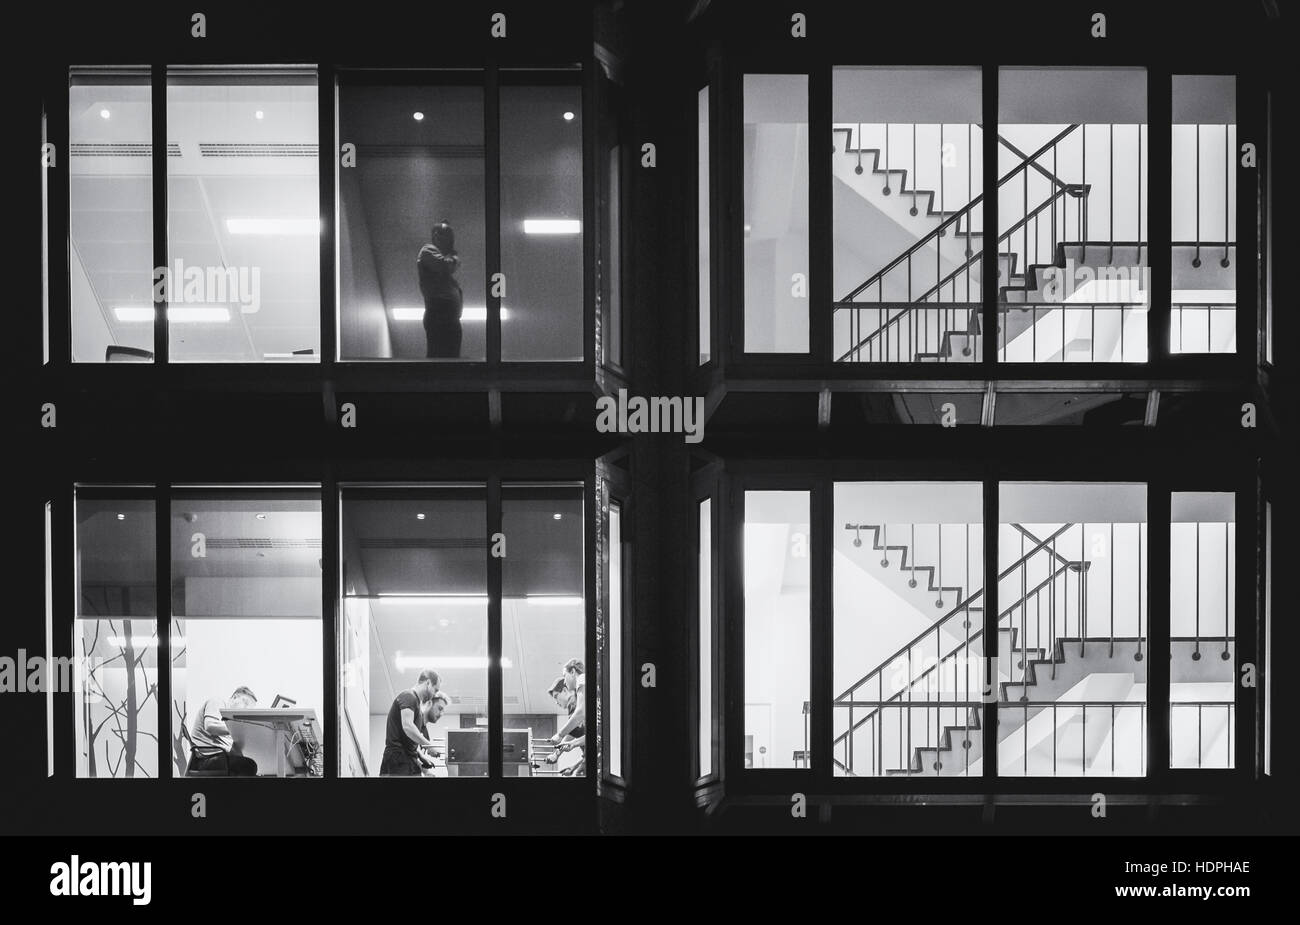 Image depicting various scenes from within an office shot from outside. - Stock Image